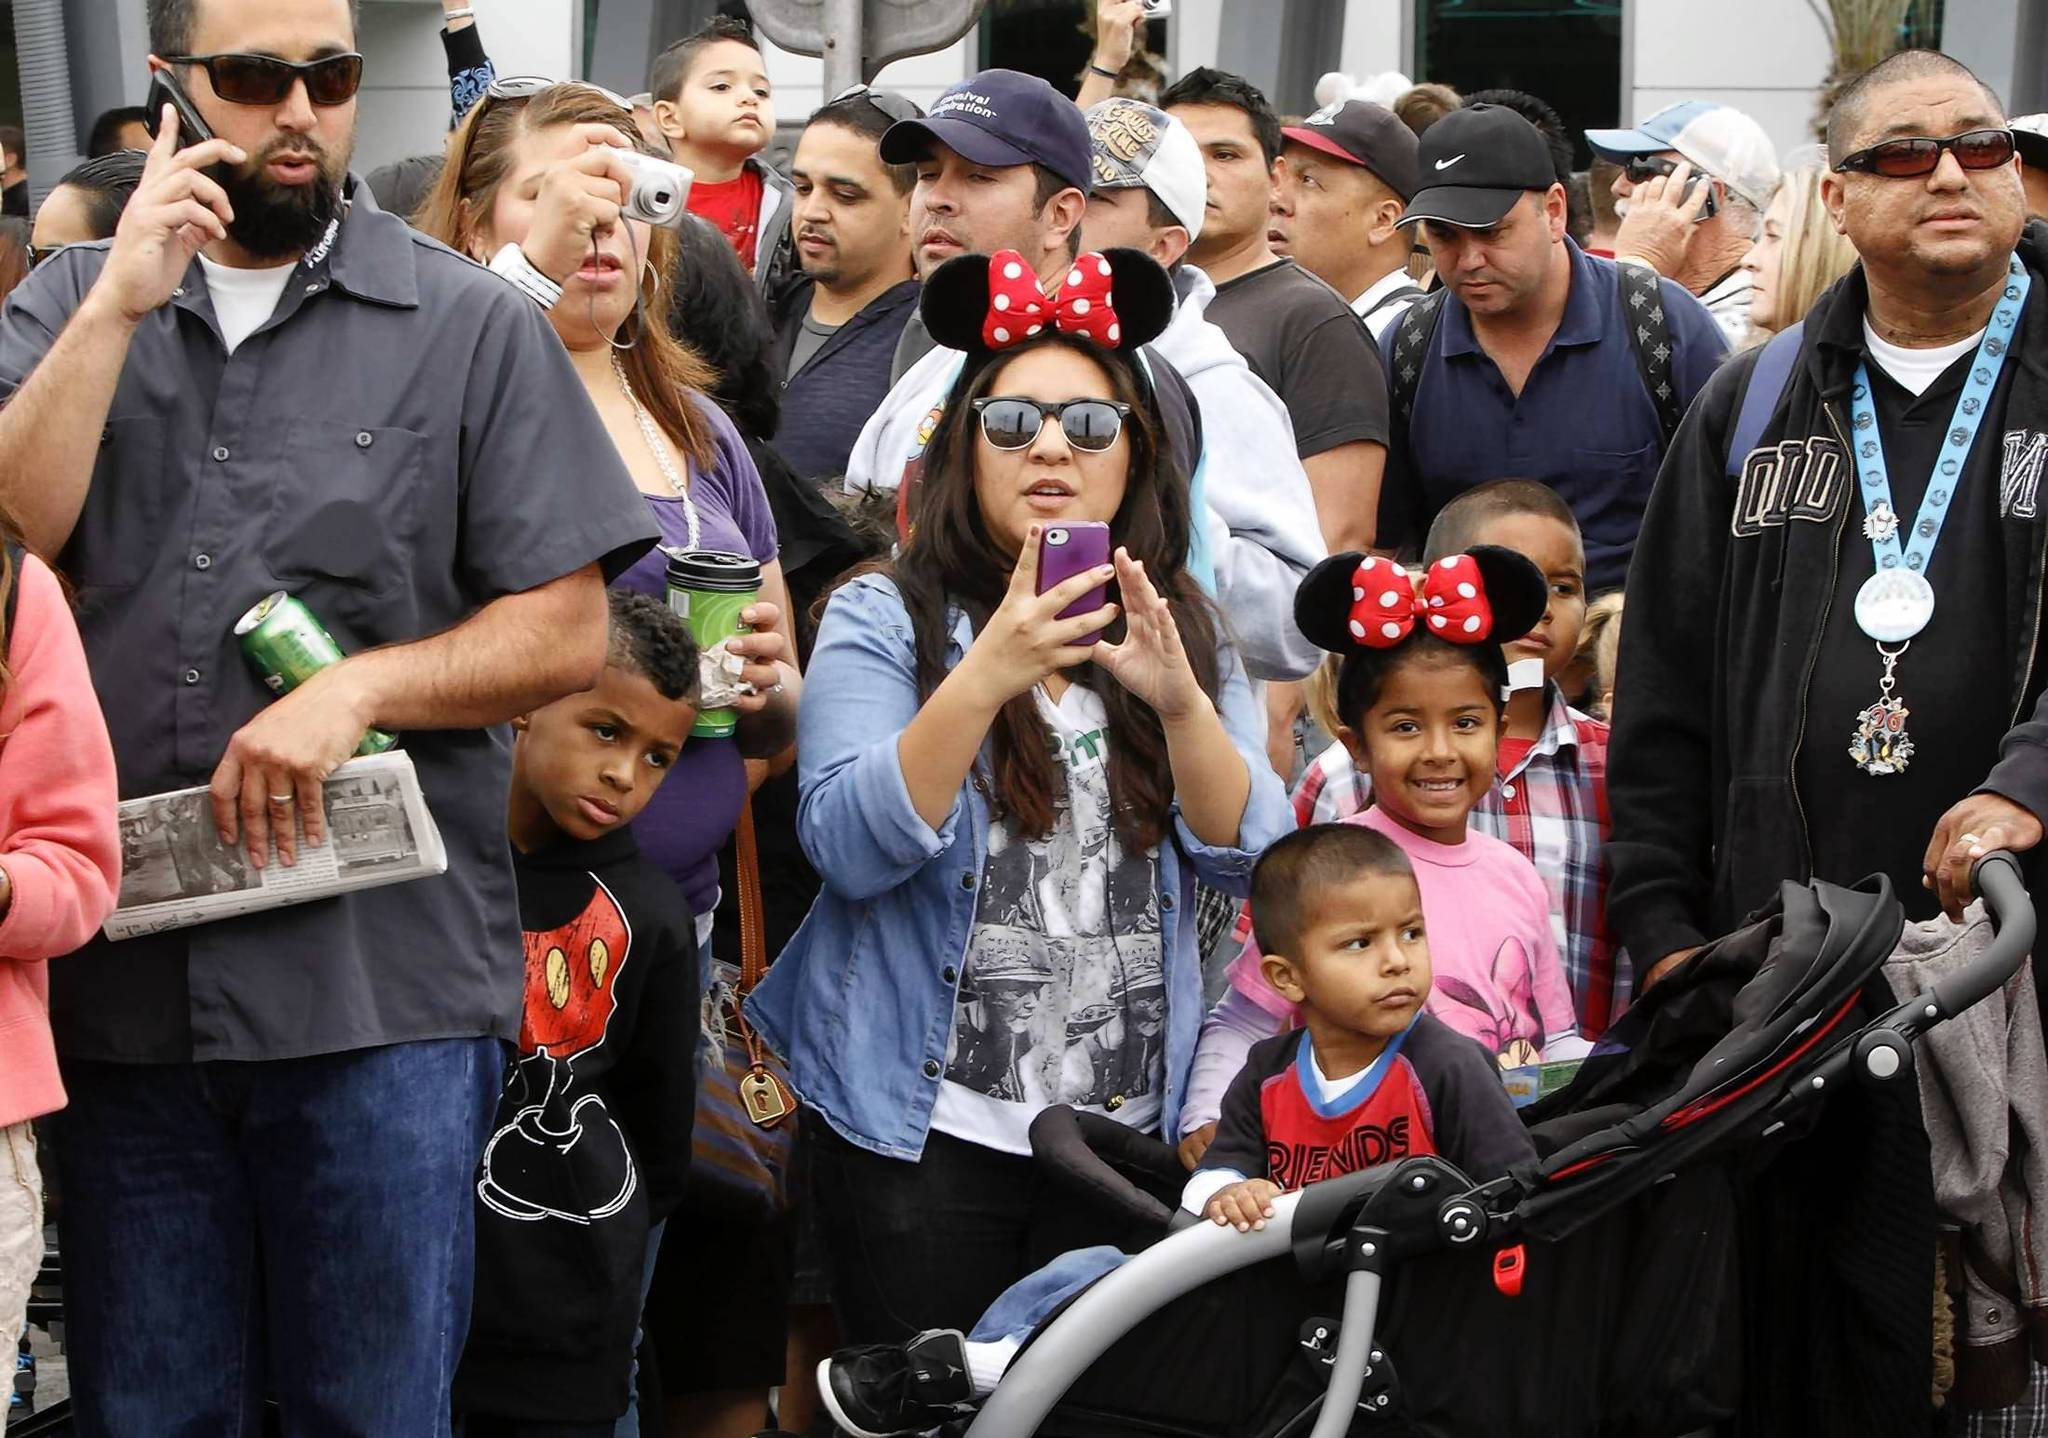 Disney officials declined to disclose attendance numbers for Disney California Adventure Park, but Al Lutz, founder of the online Disney blog Miceage.com, reported Monday that the park drew a record 43,000 visitors Friday, opening day for its new Cars Land expansion. Above,  visitors crowd onto Route 66 in Cars Land, where three new rides, shops and restaurants opened to the public Friday.